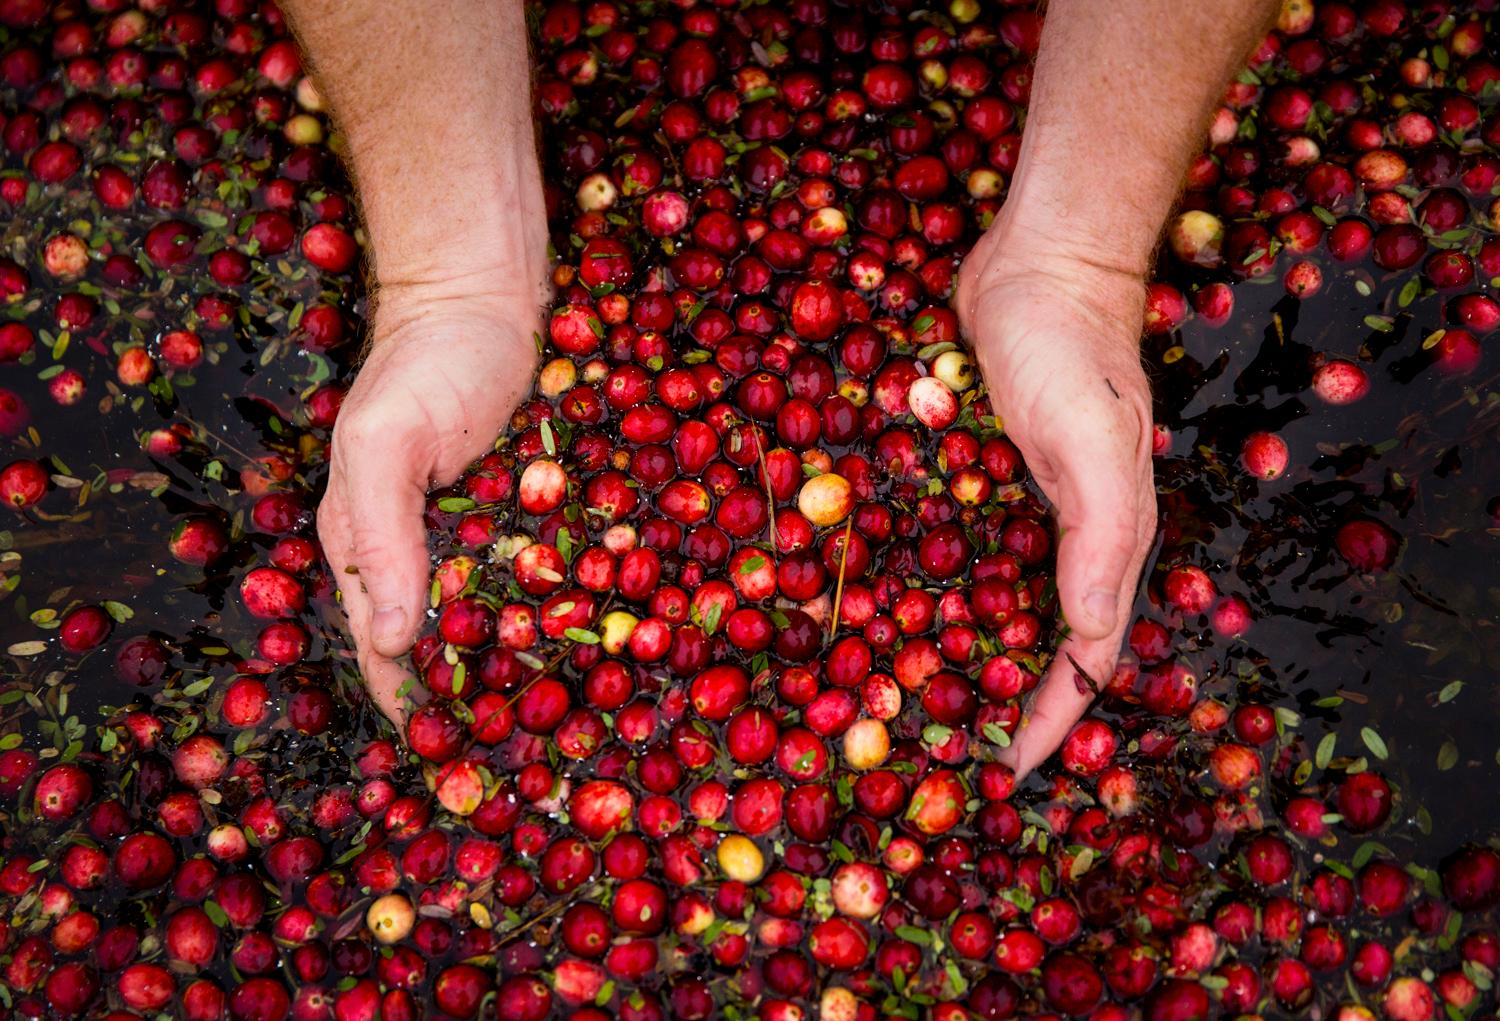 Brady Turner, co-owner of the restaurant Pickled Fish, scoops up a handful of organic cranberries during the annual harvest at Starvation Alley Farms in Long Beach. After harvesting, the cranberries will be sent off to be cleaned, then frozen, then later find their way into local restaurants, sauces, or pressed into 100 percent organic, unsweetened, and unpasteurized cranberry juice. (Sy Bean / Seattle Refined)